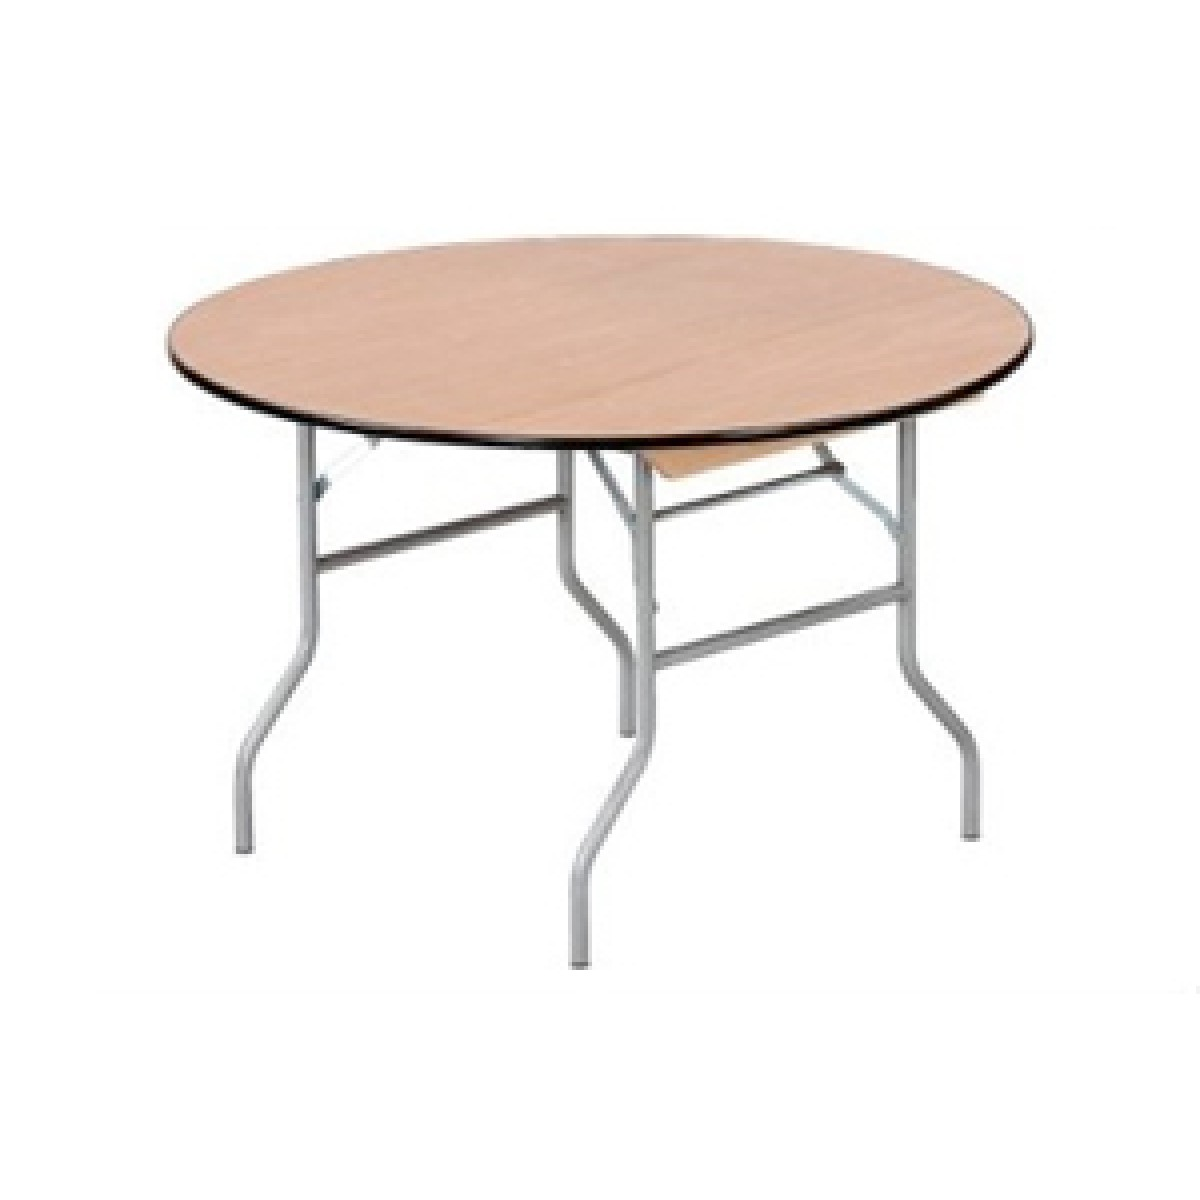 48_round_wood_table_6